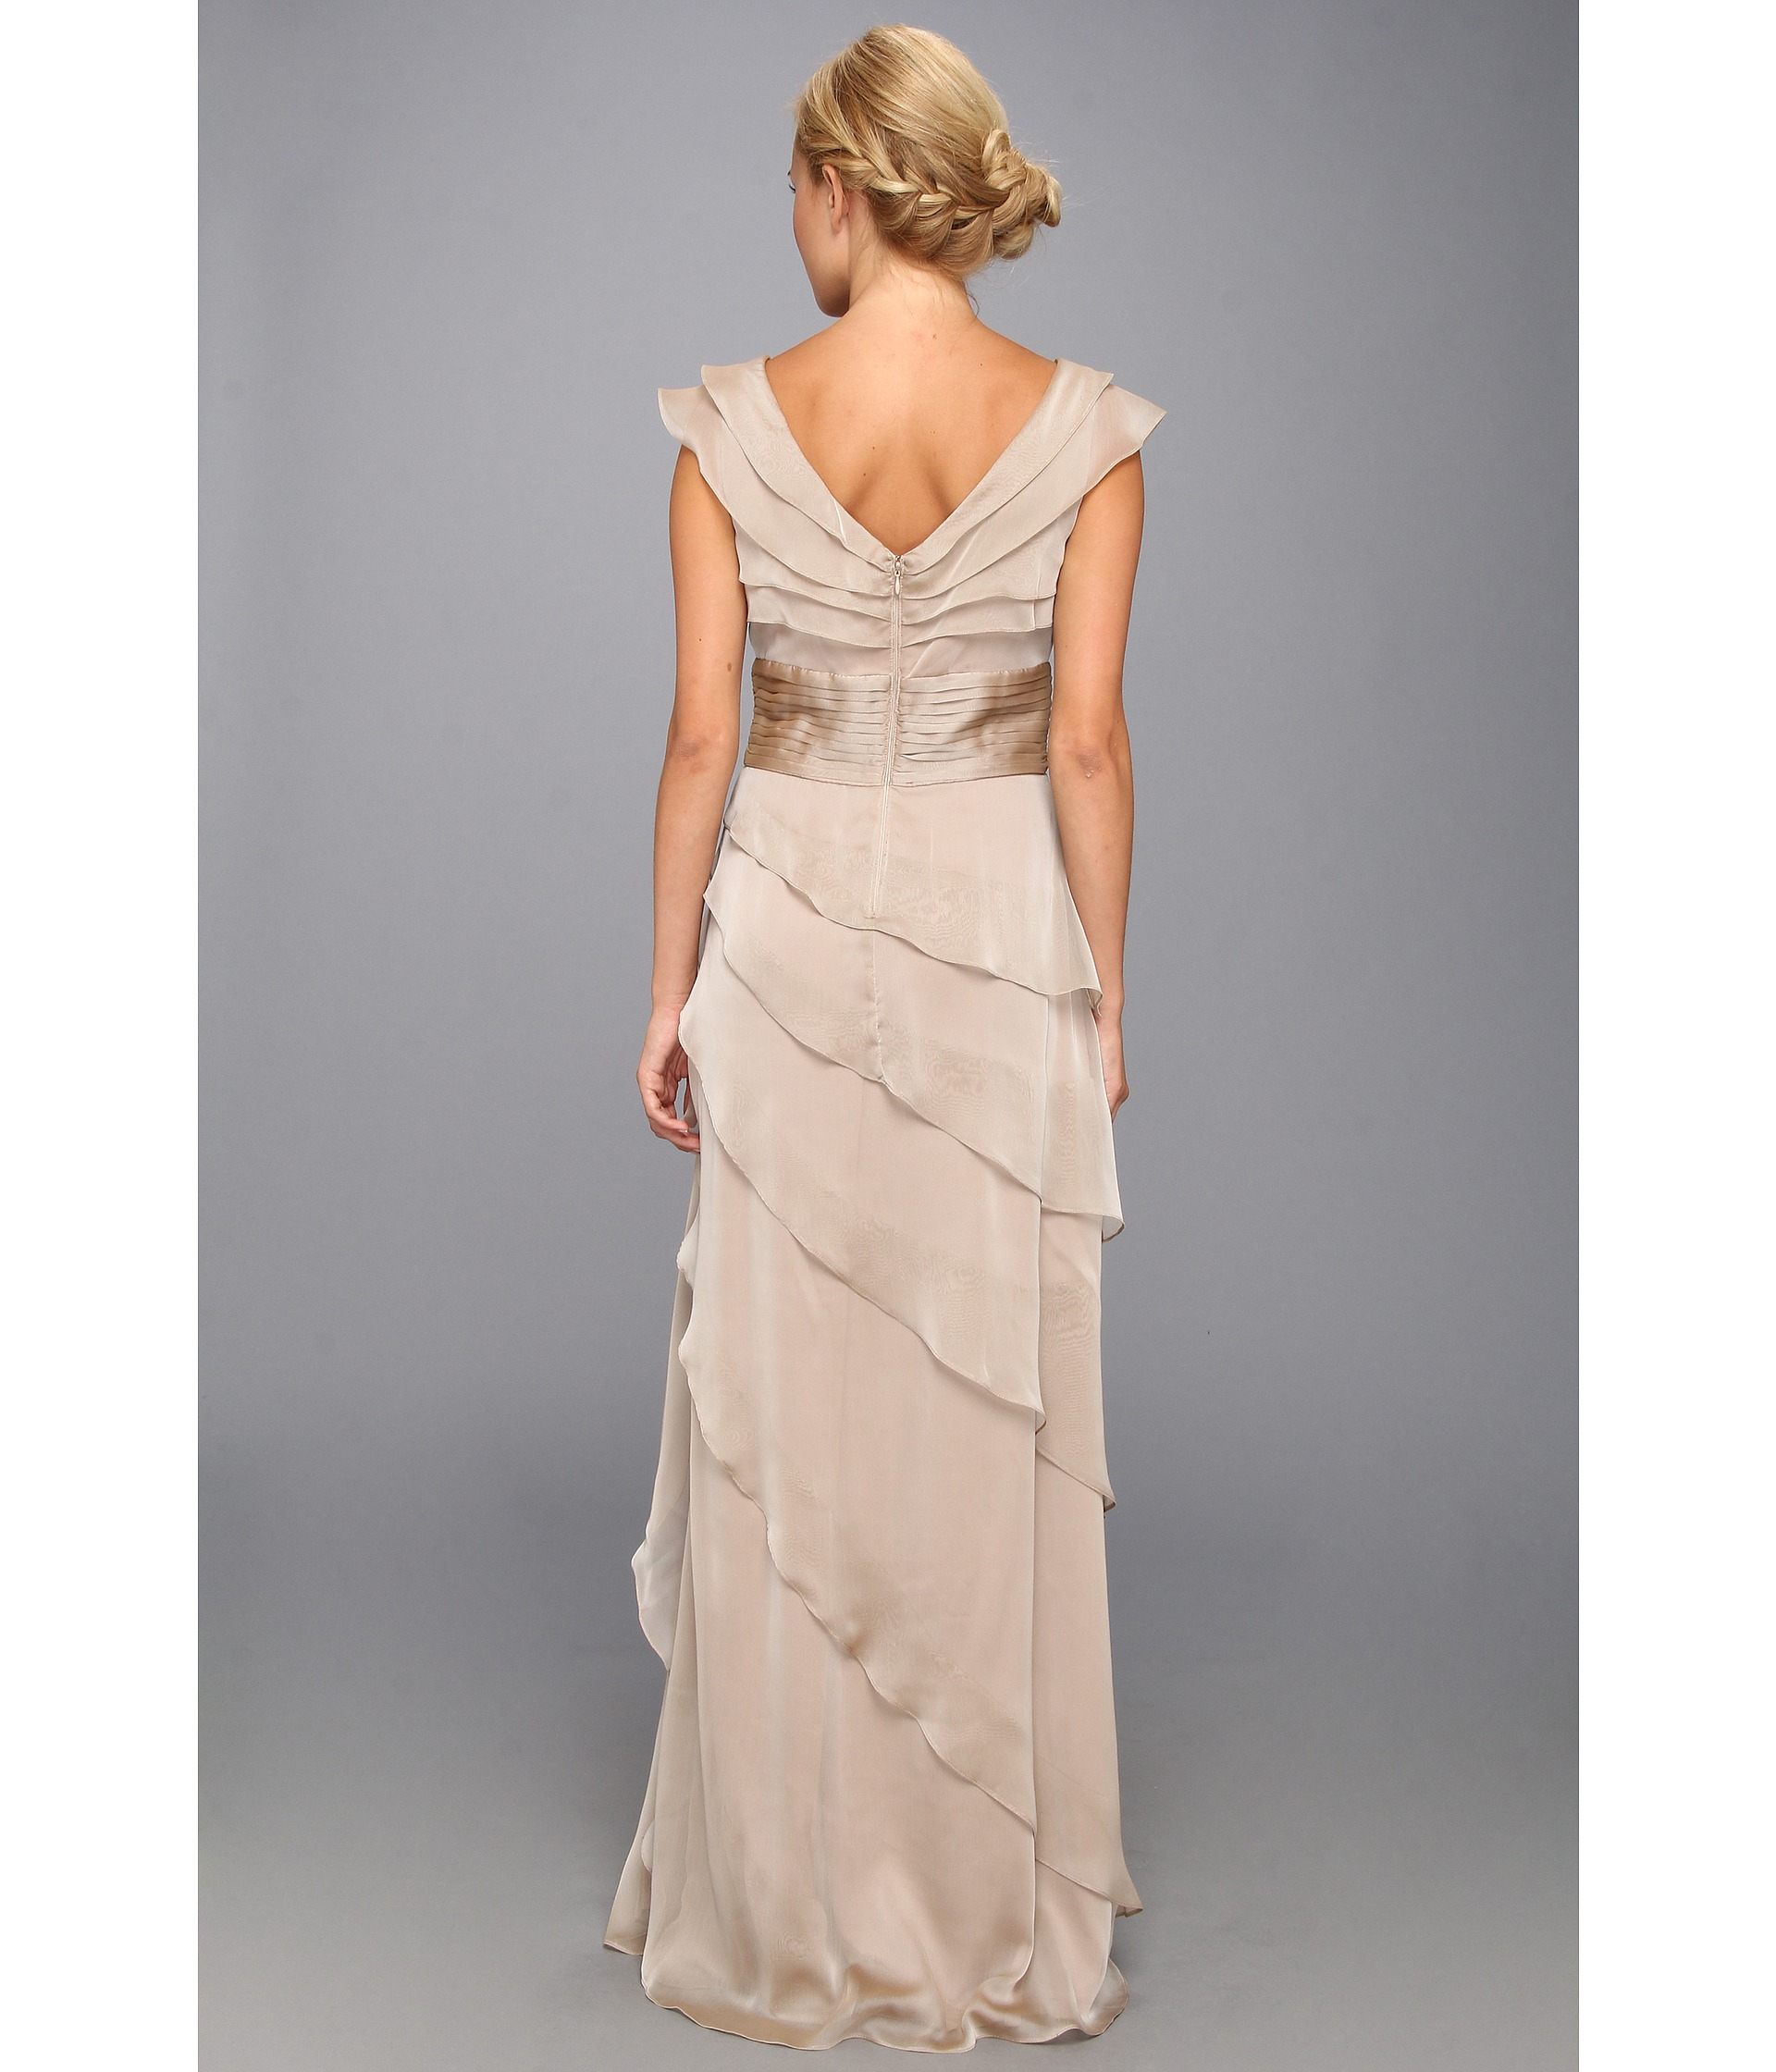 Lyst - Adrianna Papell Long Irri Tiered Petal Dress in Natural